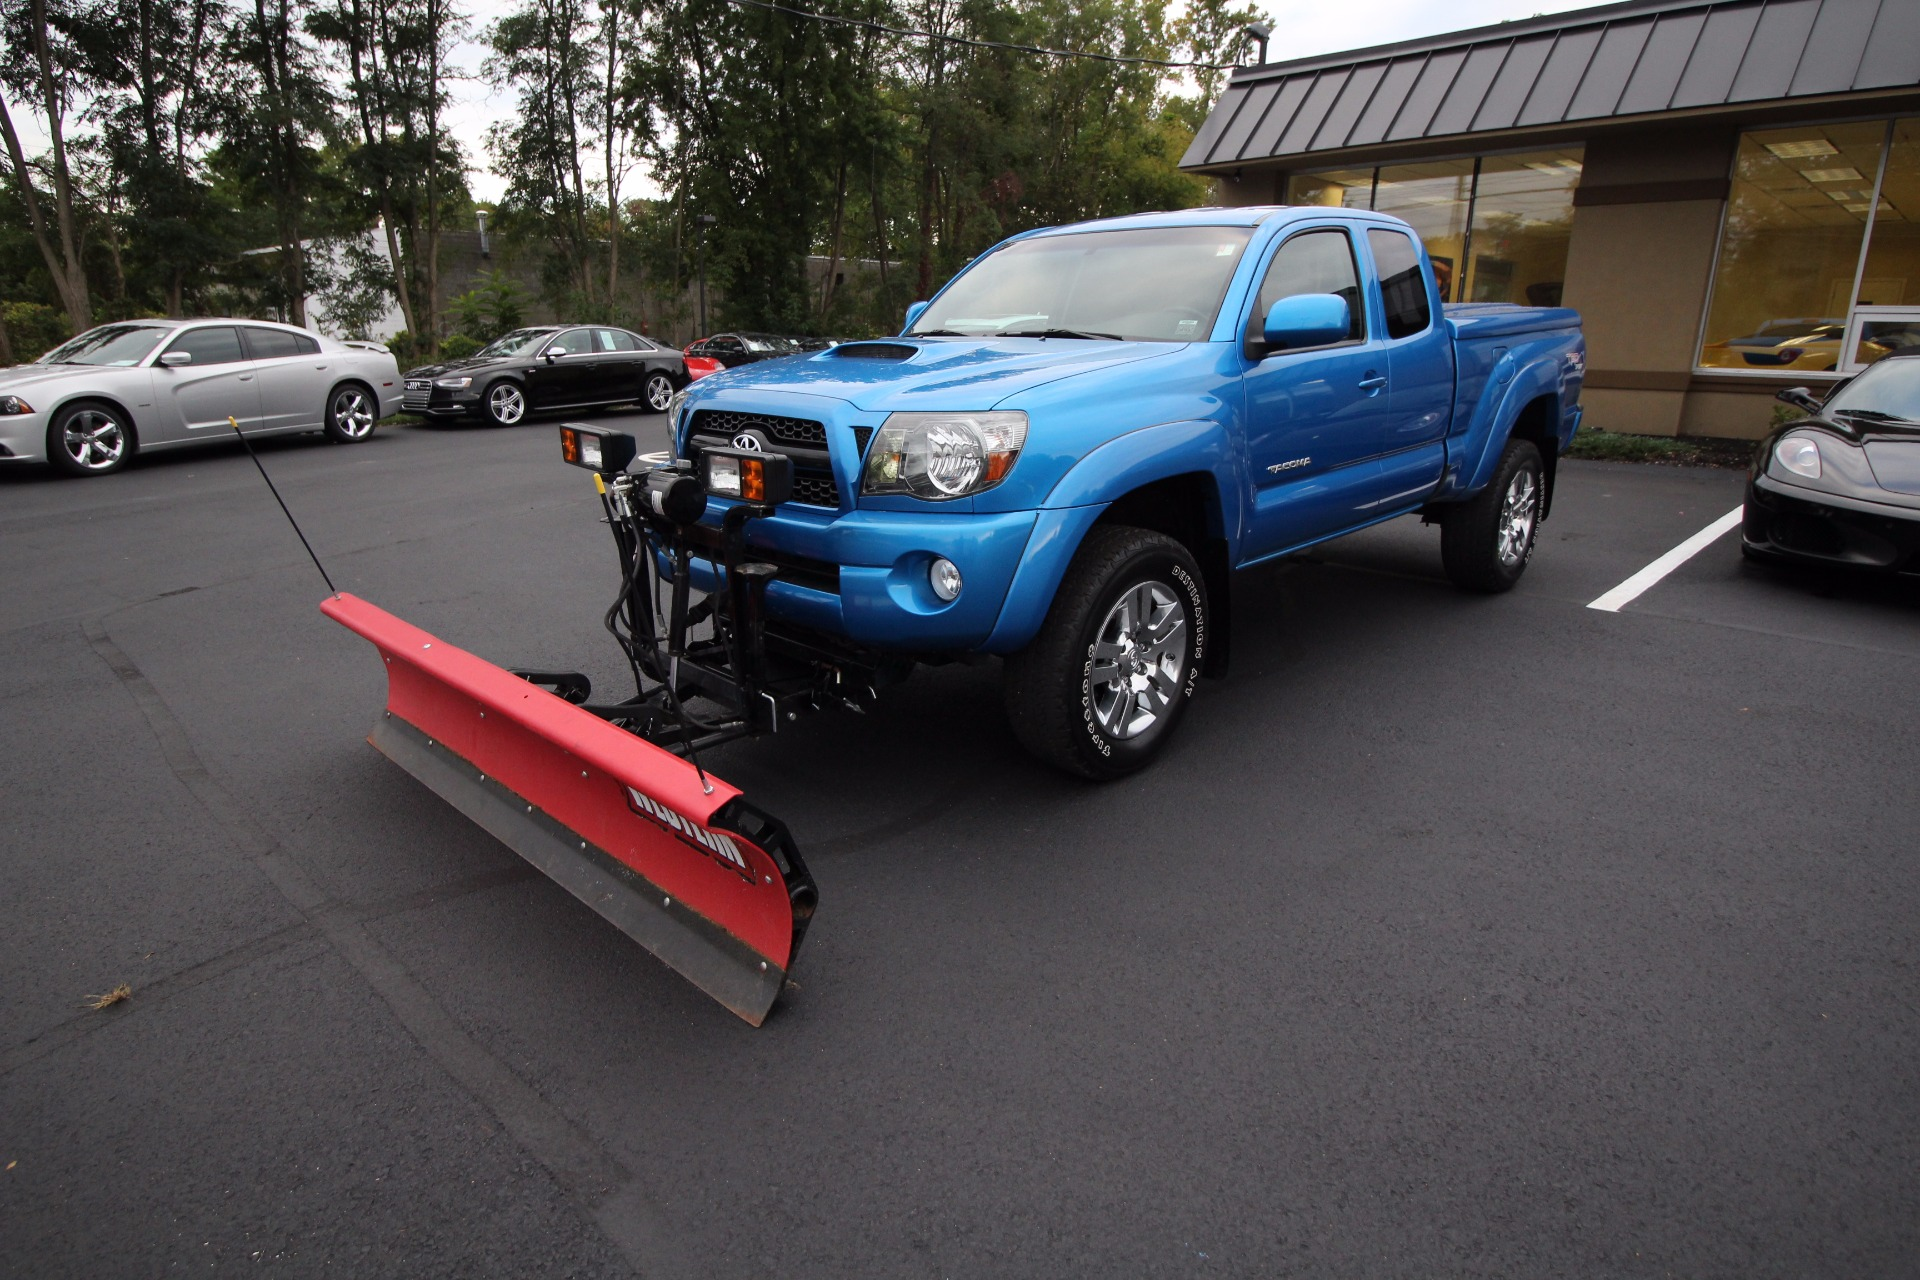 2011 Toyota Ta a Access Cab V6 Auto 4WD Stock for sale